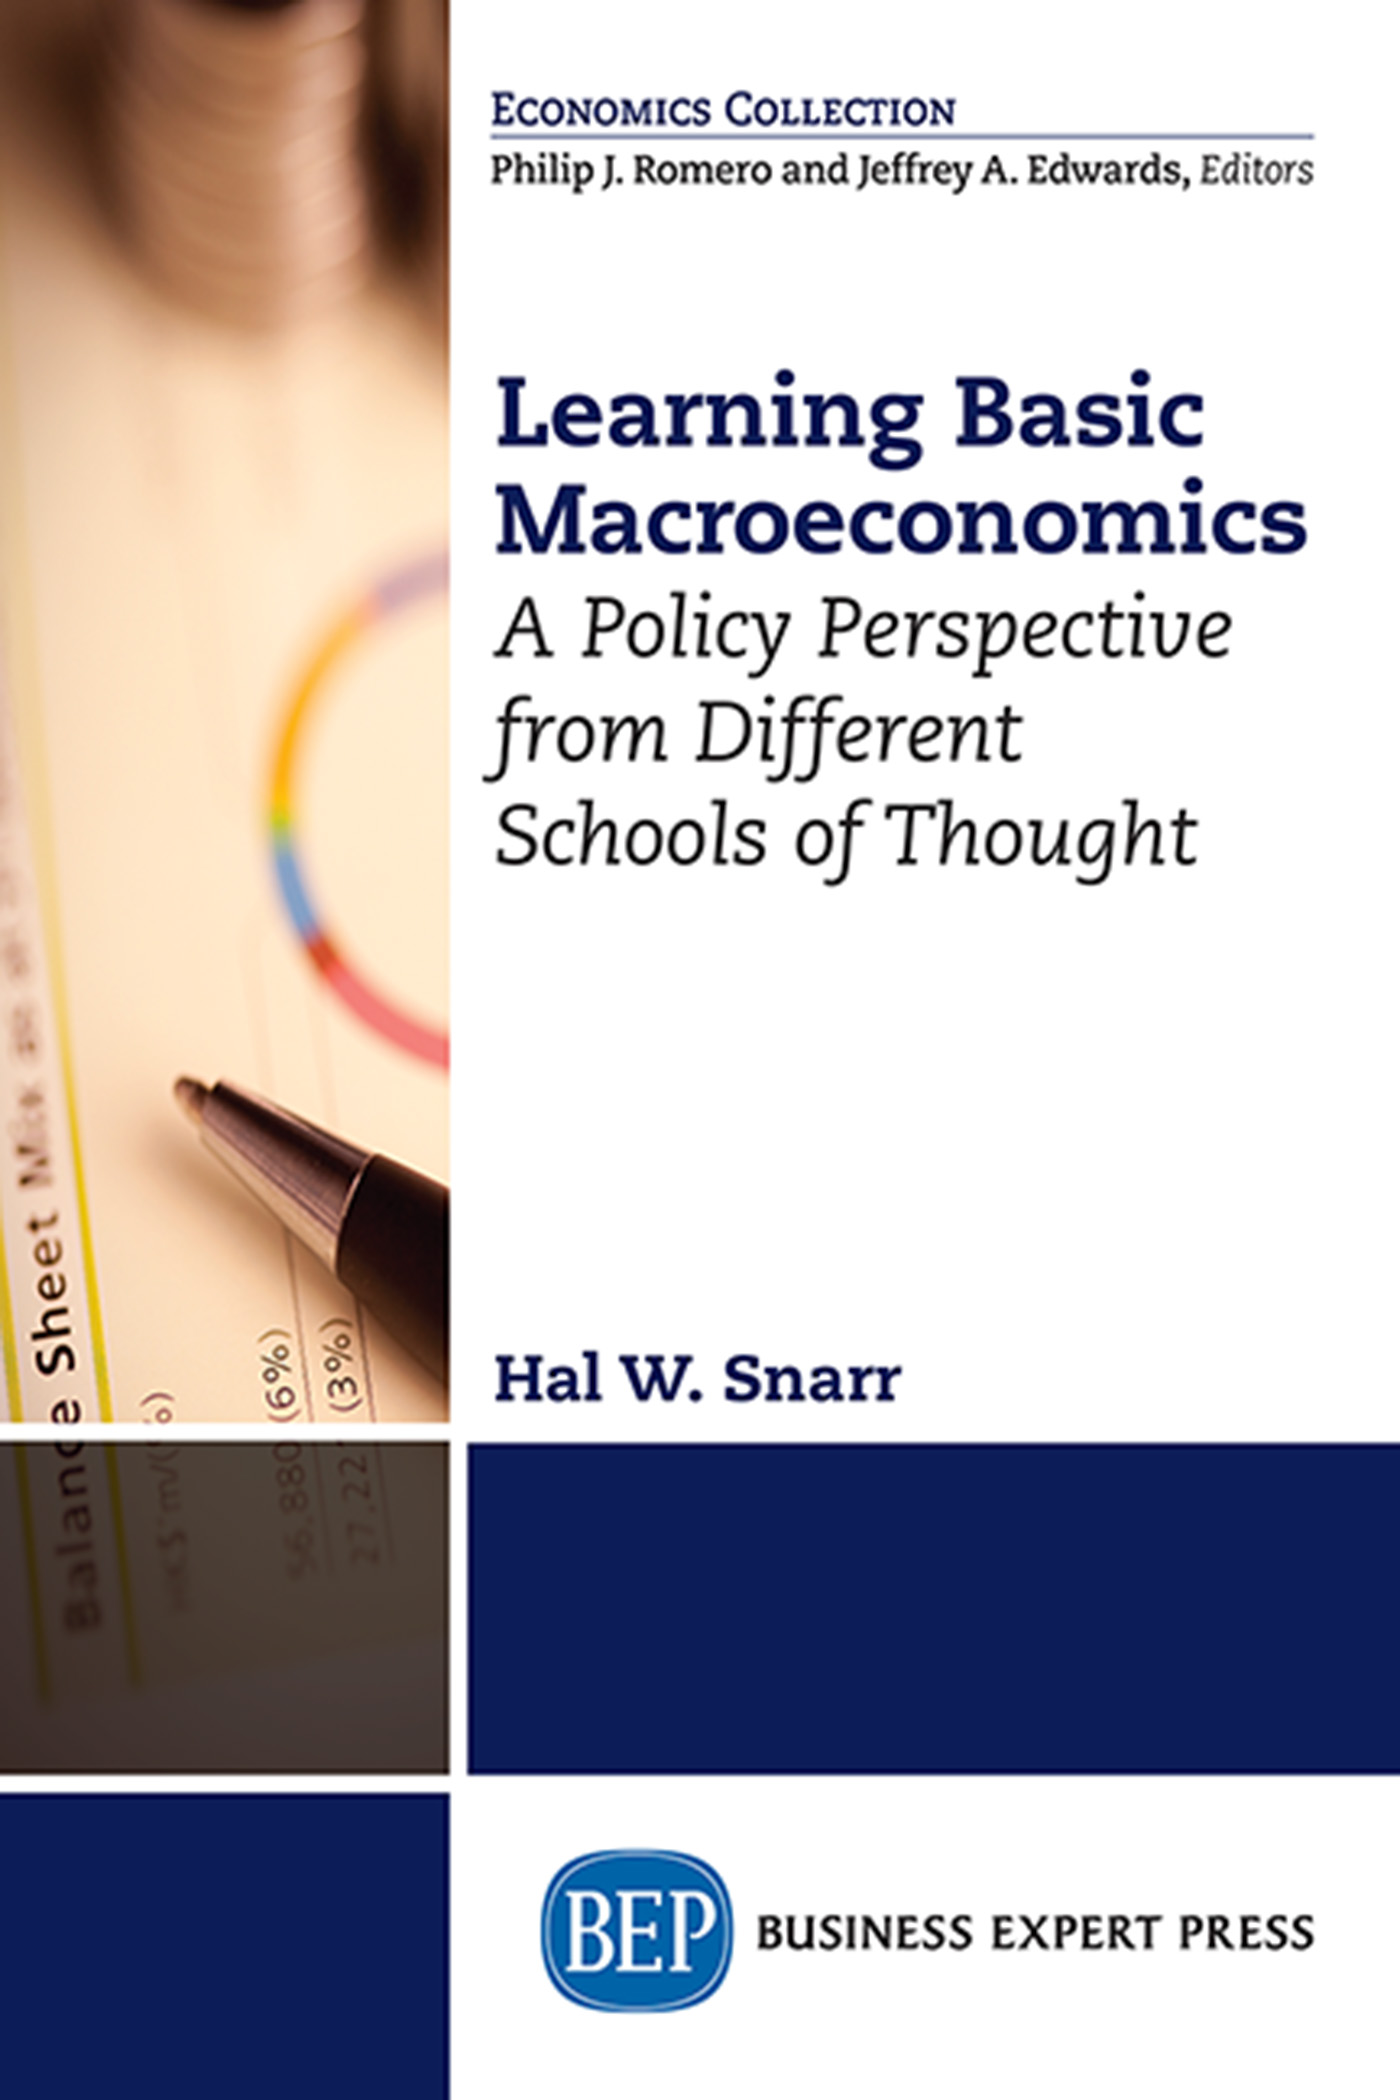 Download Ebook Learning Basic Macroeconomics by Hal W. Snarr Pdf